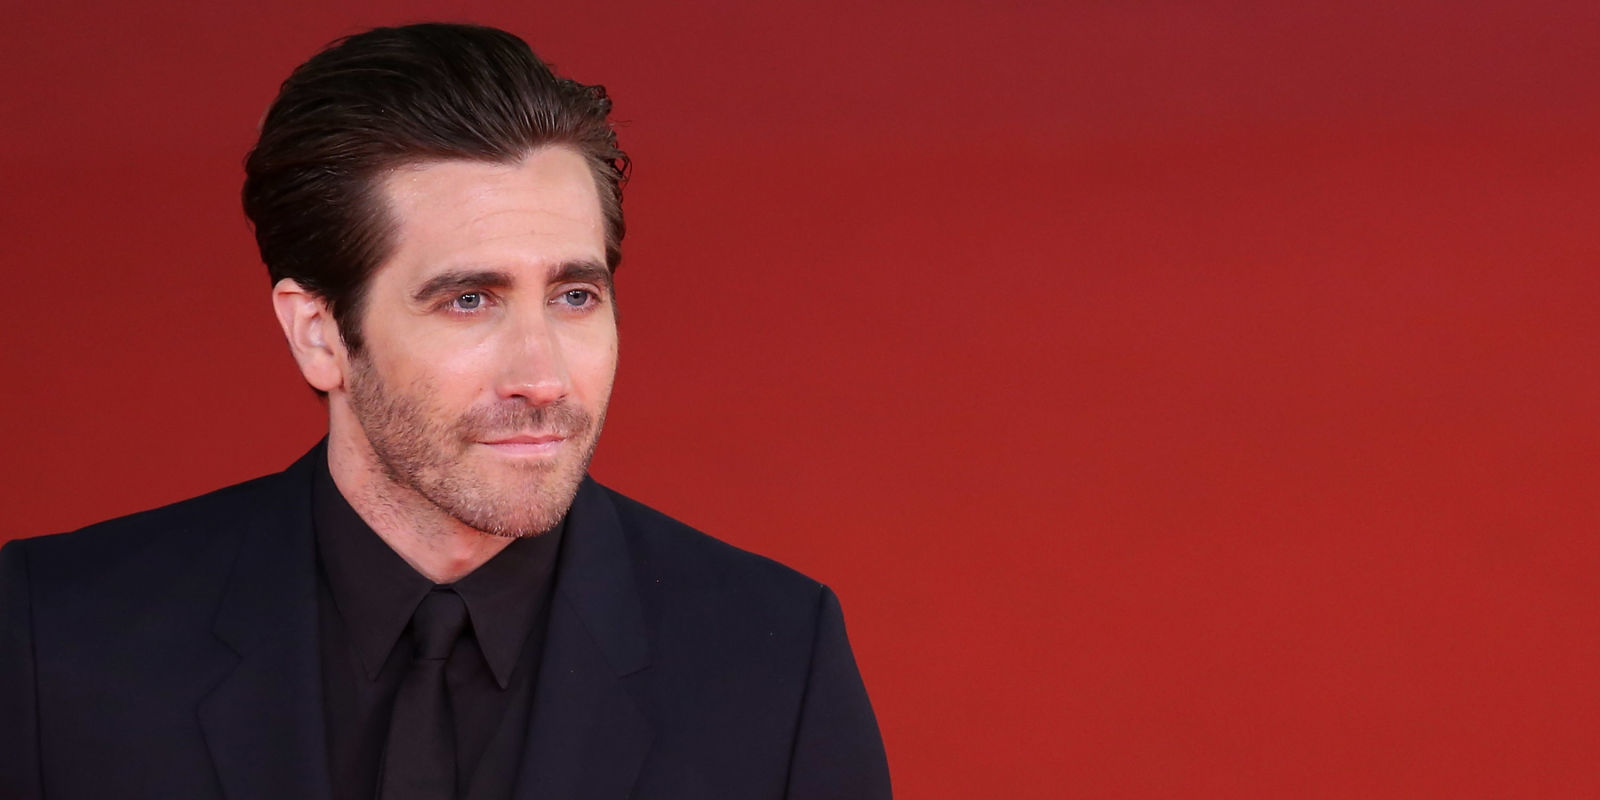 mentally dating jake gyllenhaal shirt Jake gyllenhaal is the hot new star of the eternity calvin klein fragrance ads, and you can get your first look here how can someone look so sexy in a simple white t-shirt.